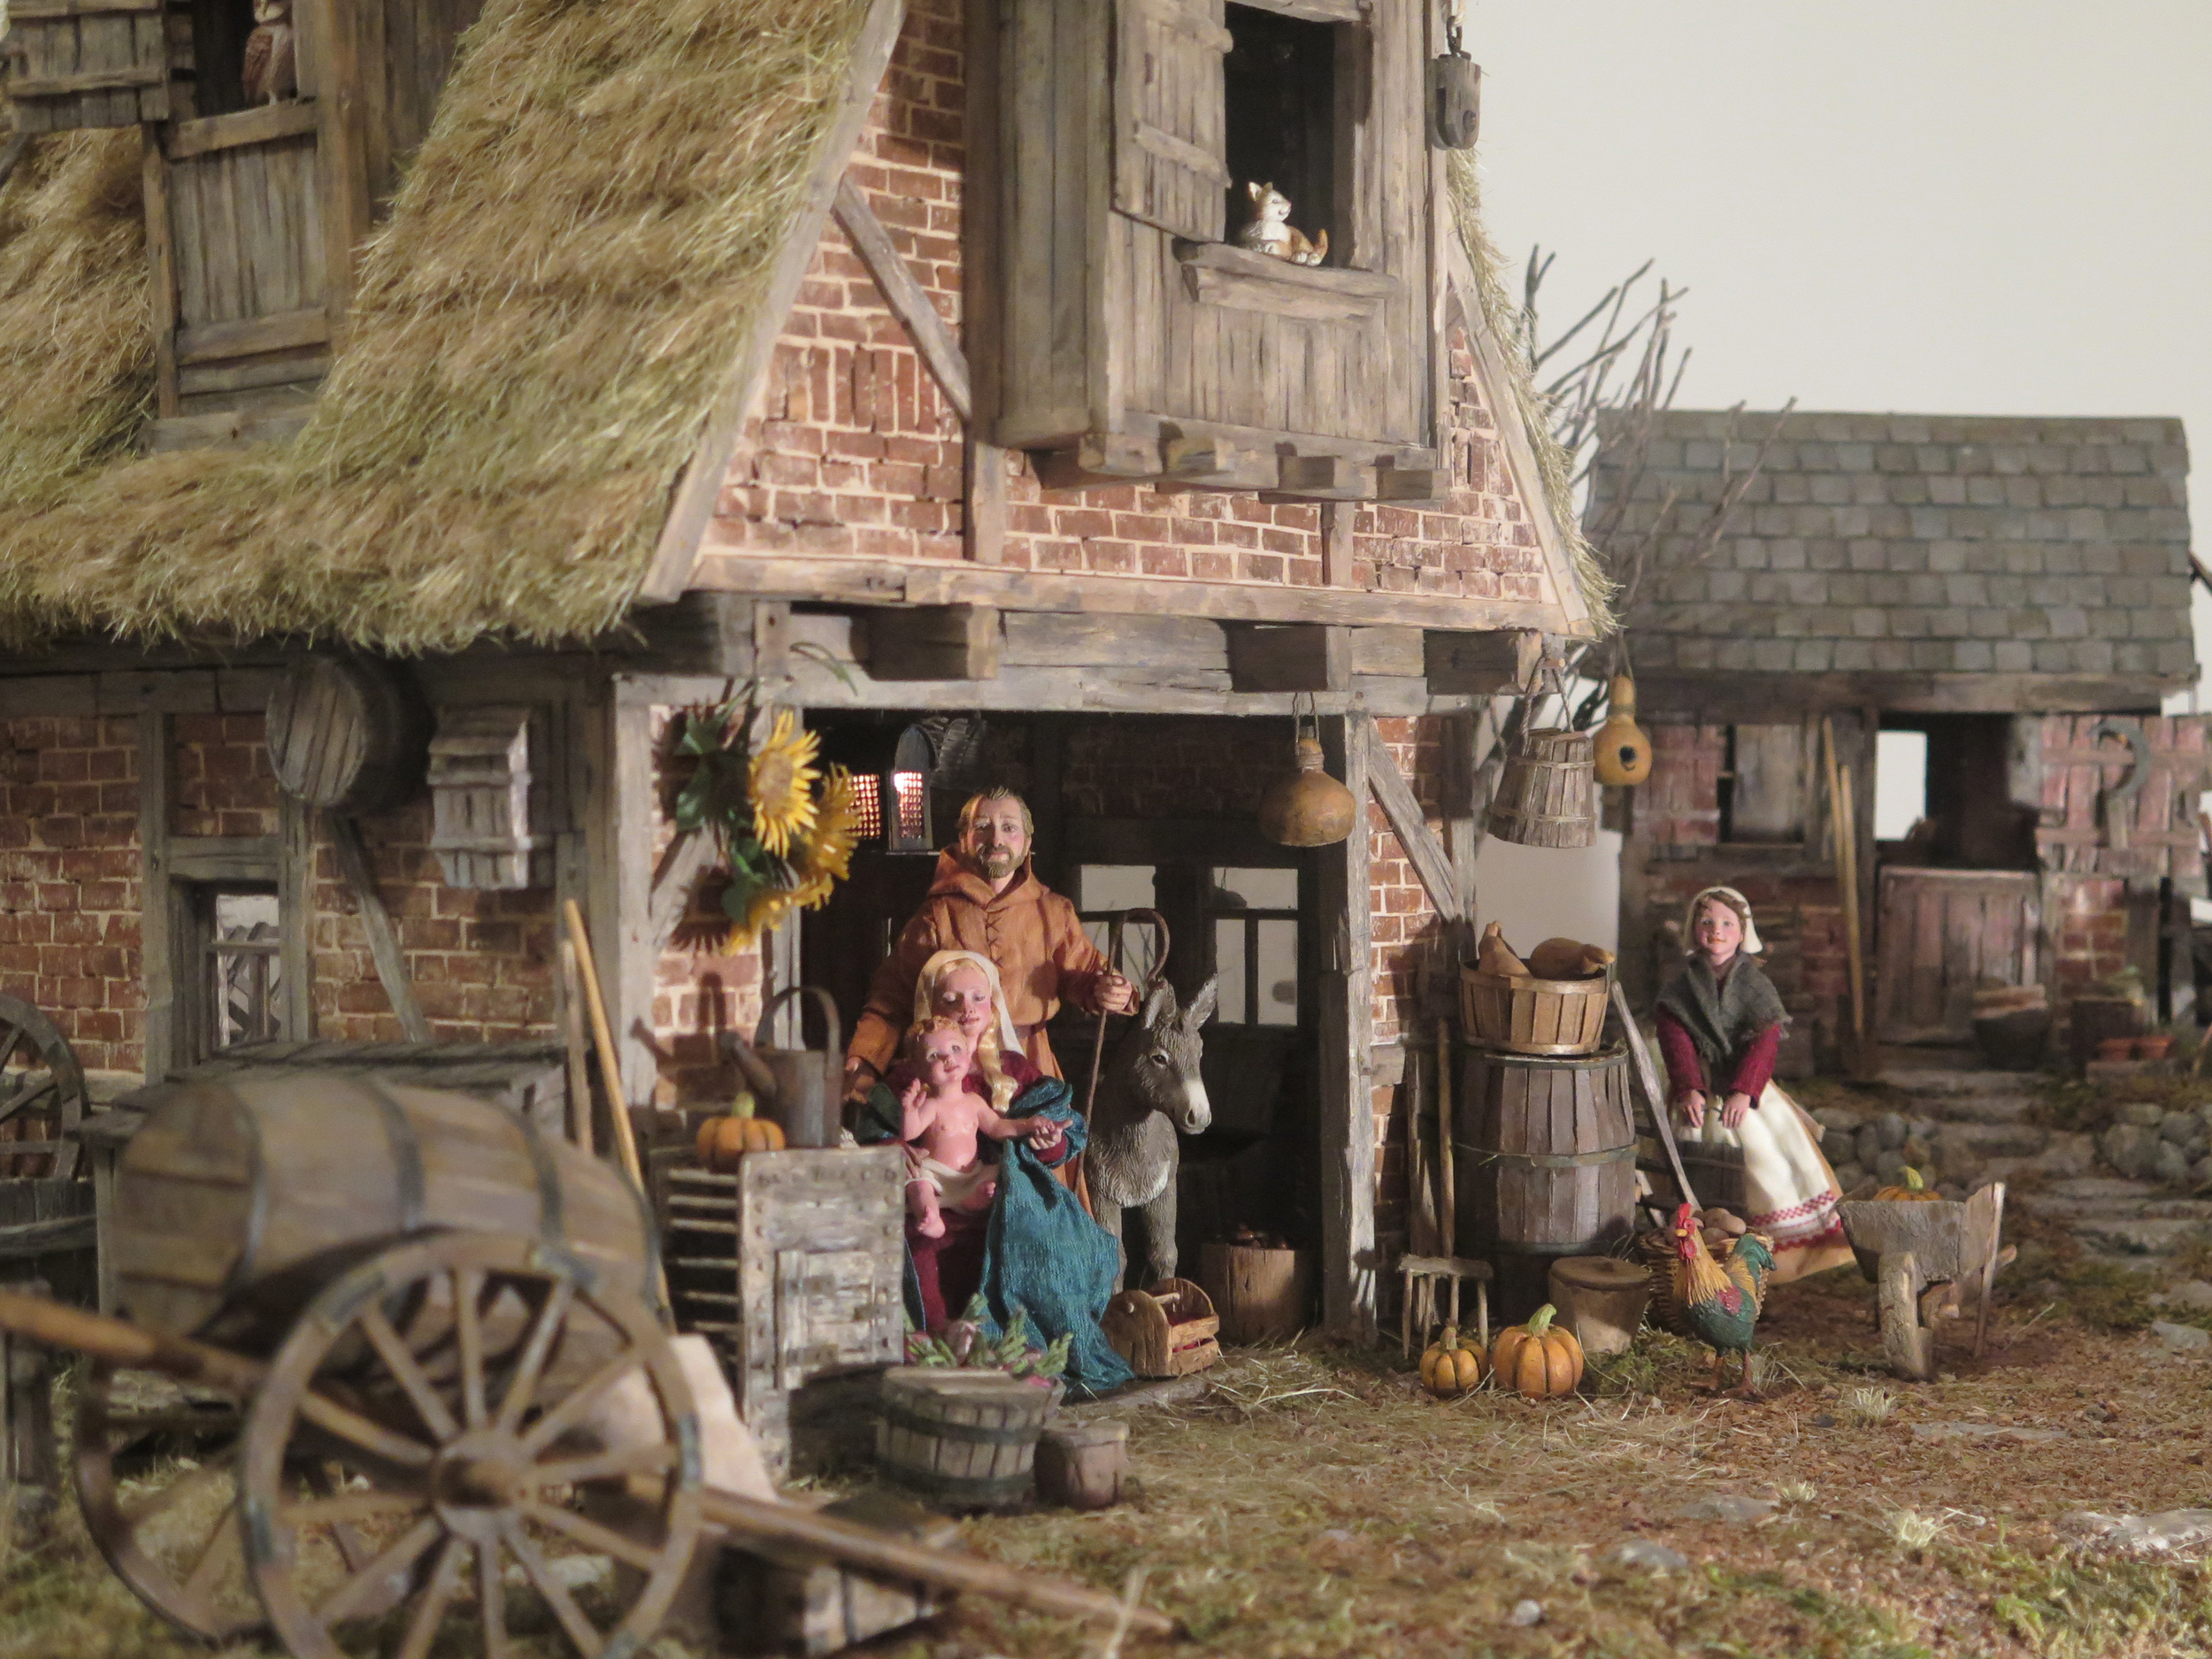 A 16th-Century-style Flemish Nativity created by R. Michael Palan and Karen Loccisano.